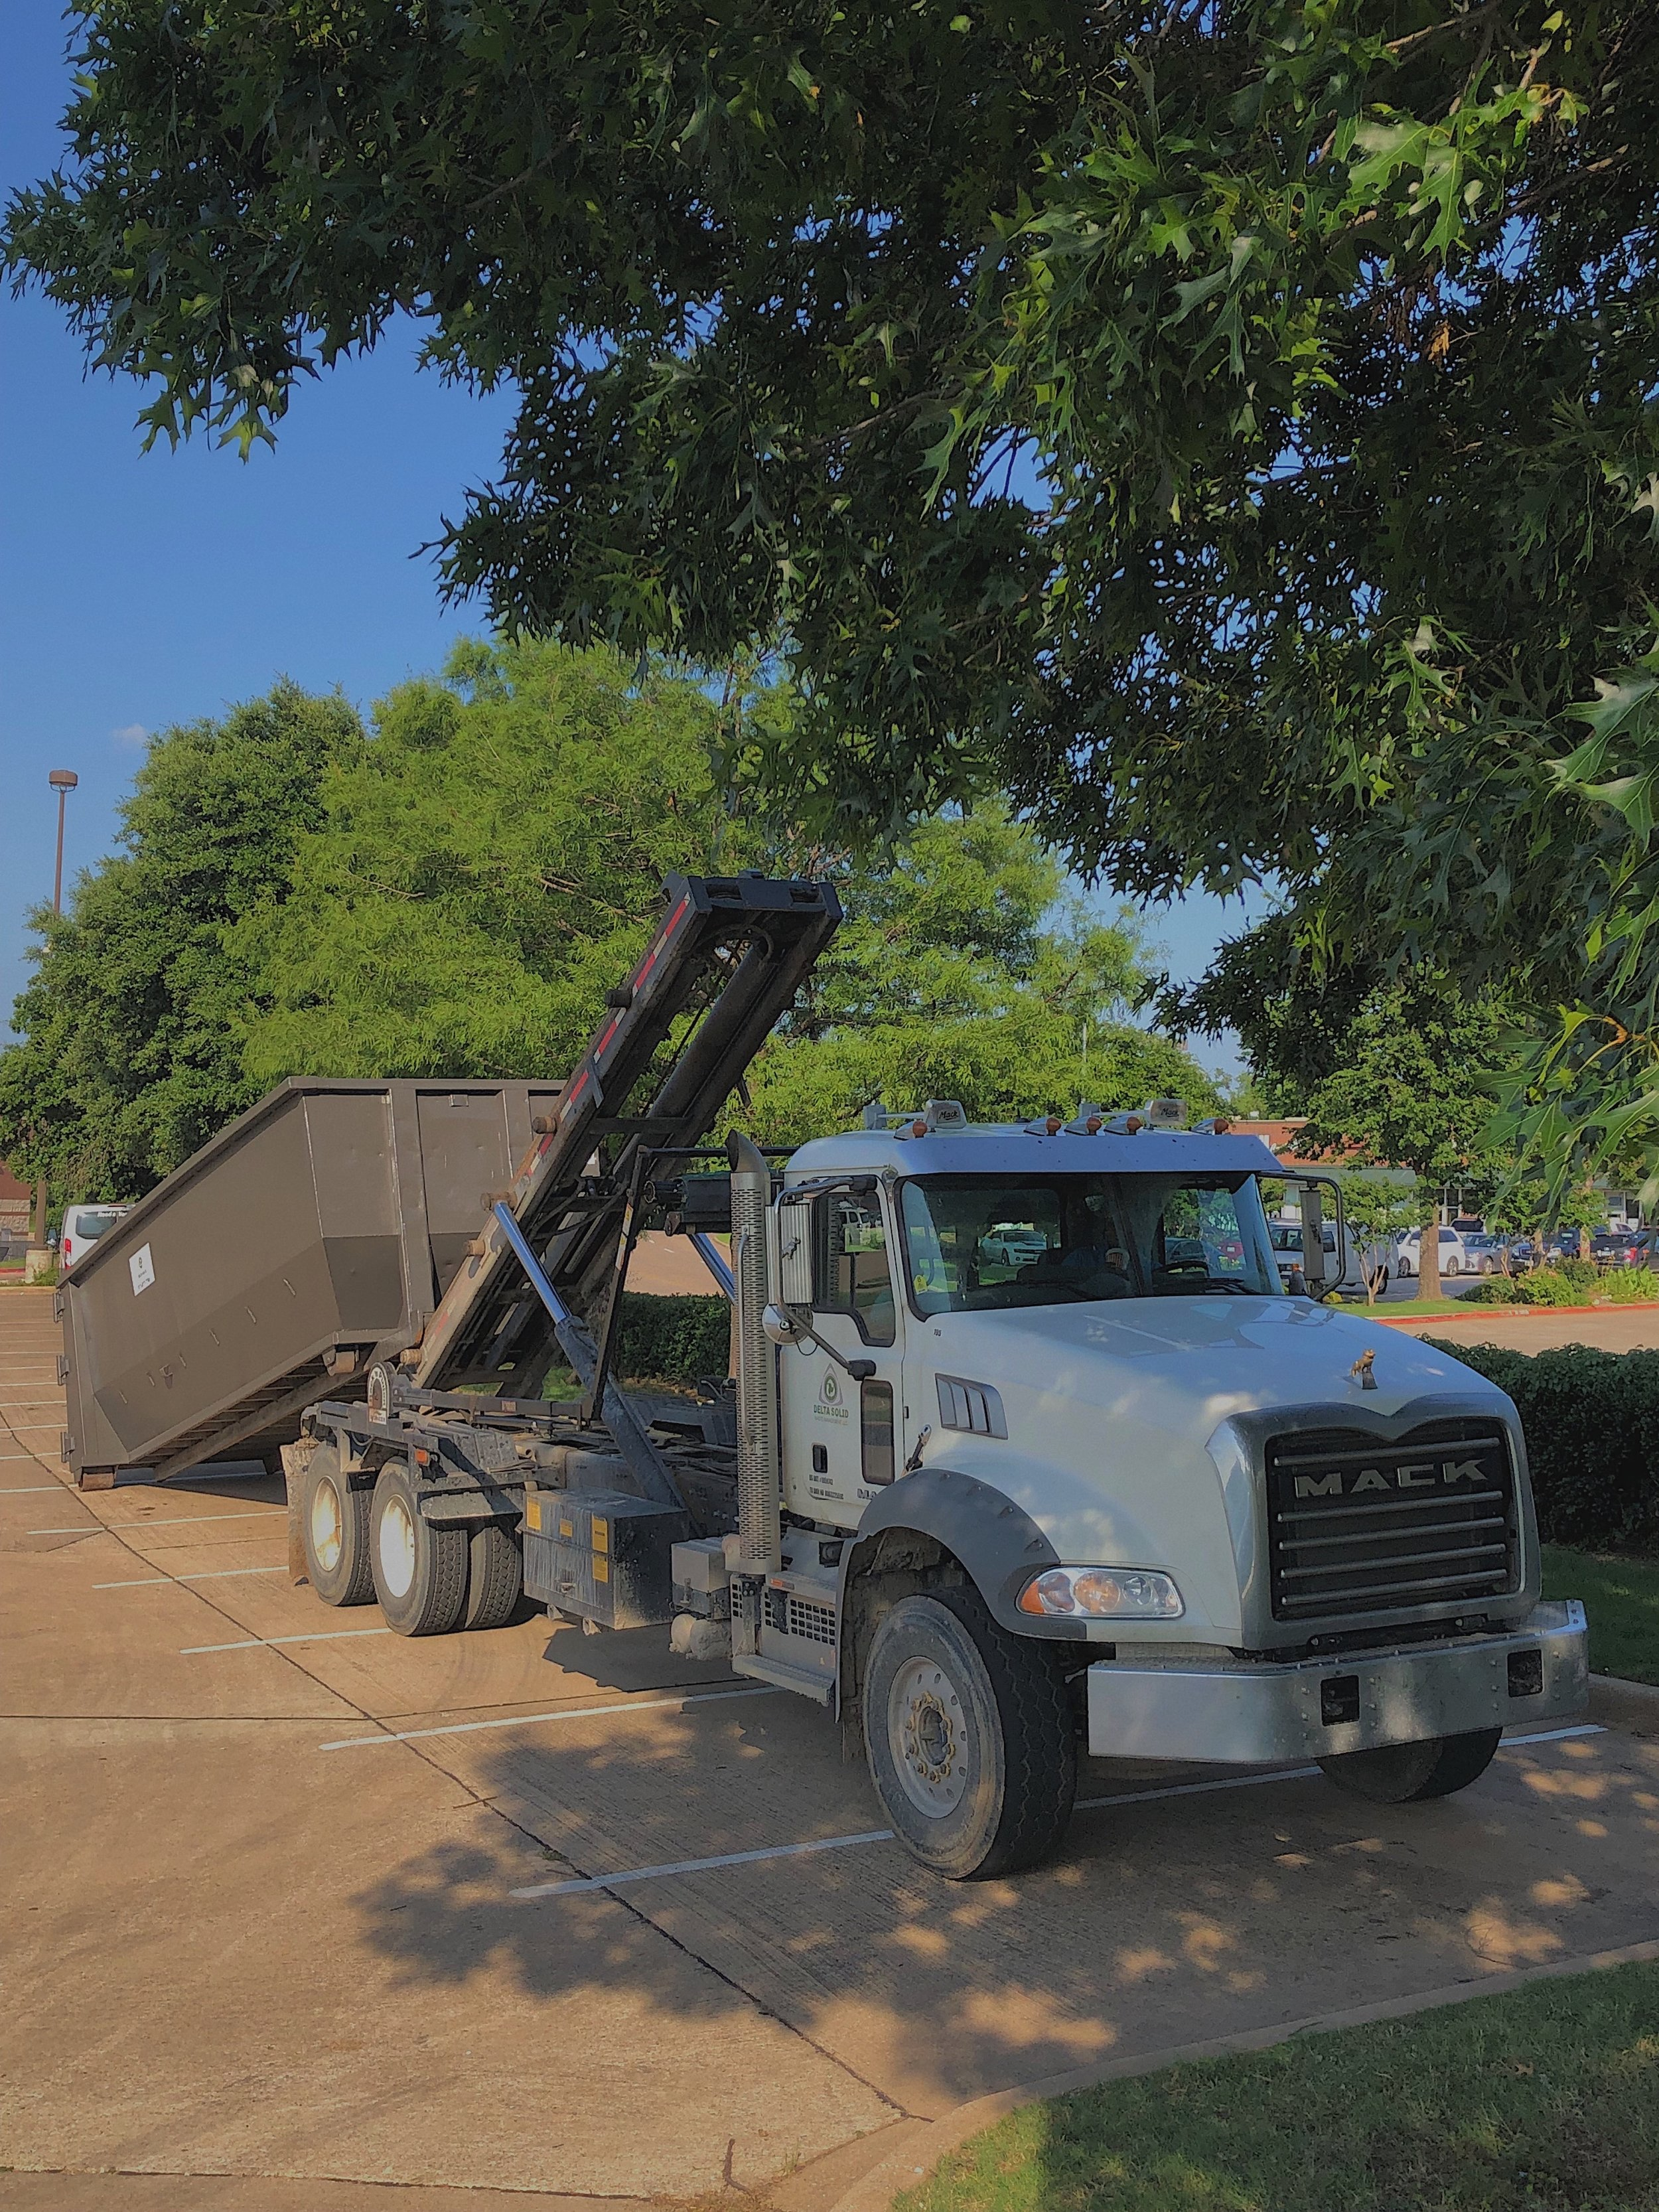 Proudly Serving North Texas Residents.. - --At Delta Solid Waste, Safety is our number one priority. We ensure safe dumpster rental. -Provides comprehensive and dependable roll off service. -We have established ourselves as leaders in the trash hauling industry through many years of outstanding service.-We provide a wide range of dumpster sizes to accommodate homeowners, contractors, and property managers